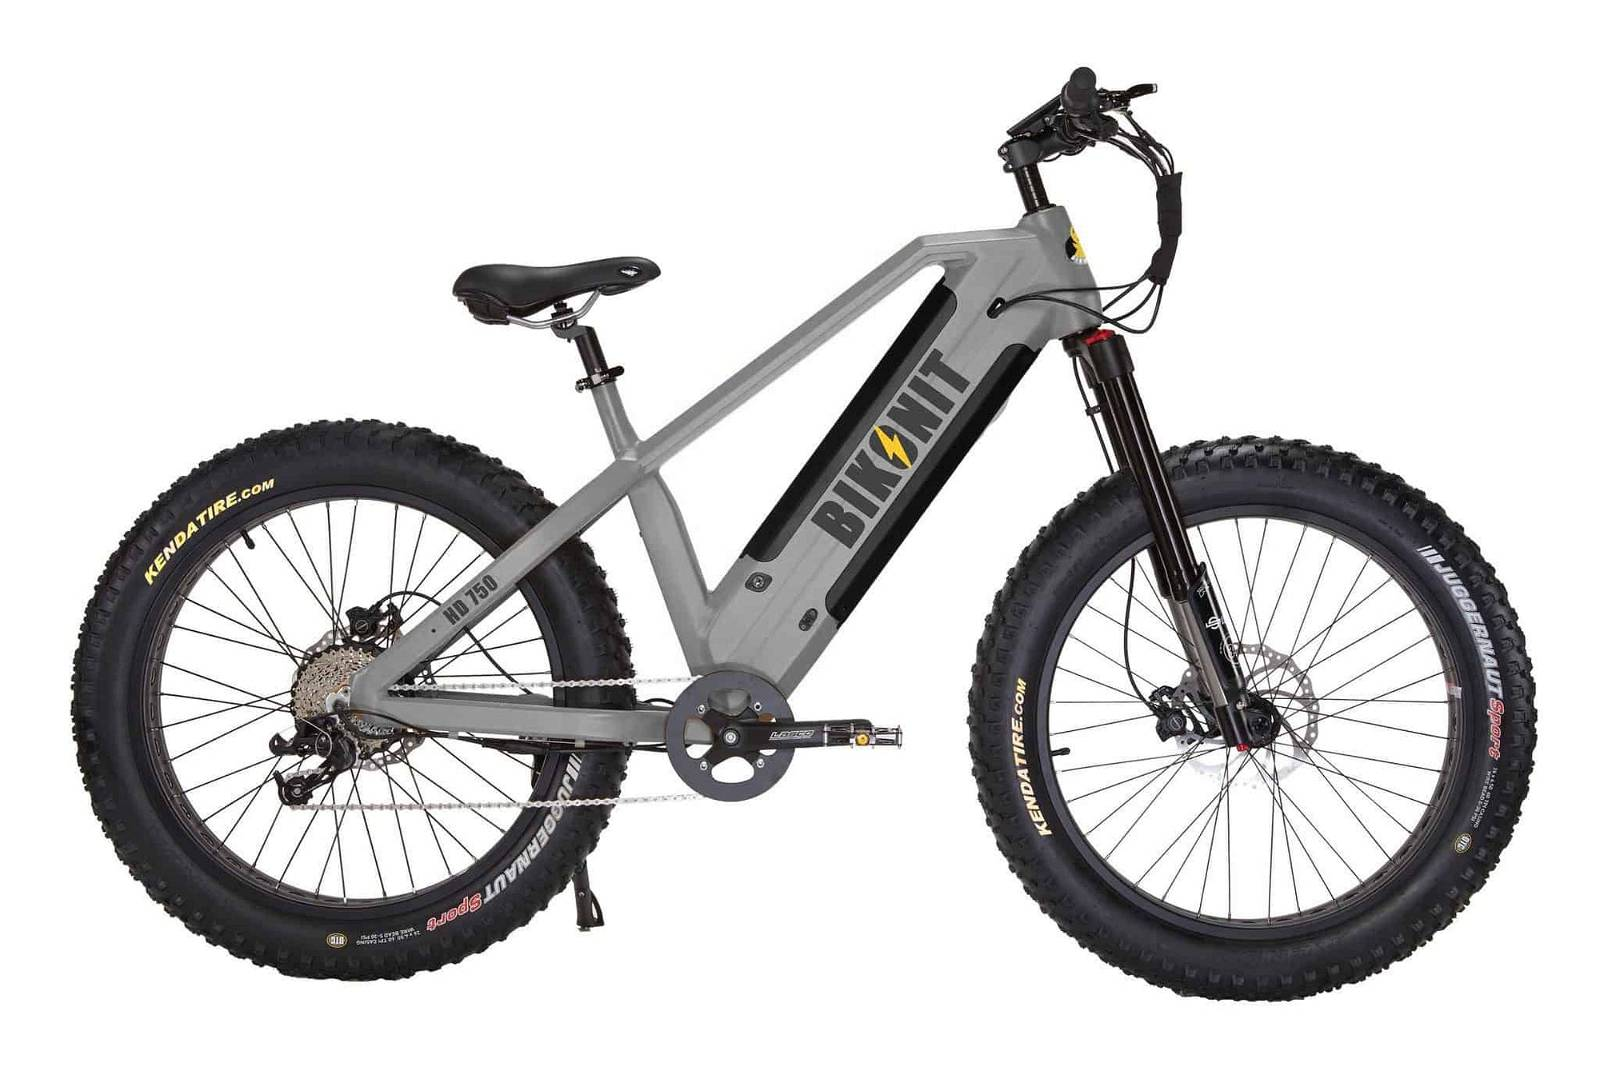 Bikonit Warthog HD 750 Electric Hunting Bike